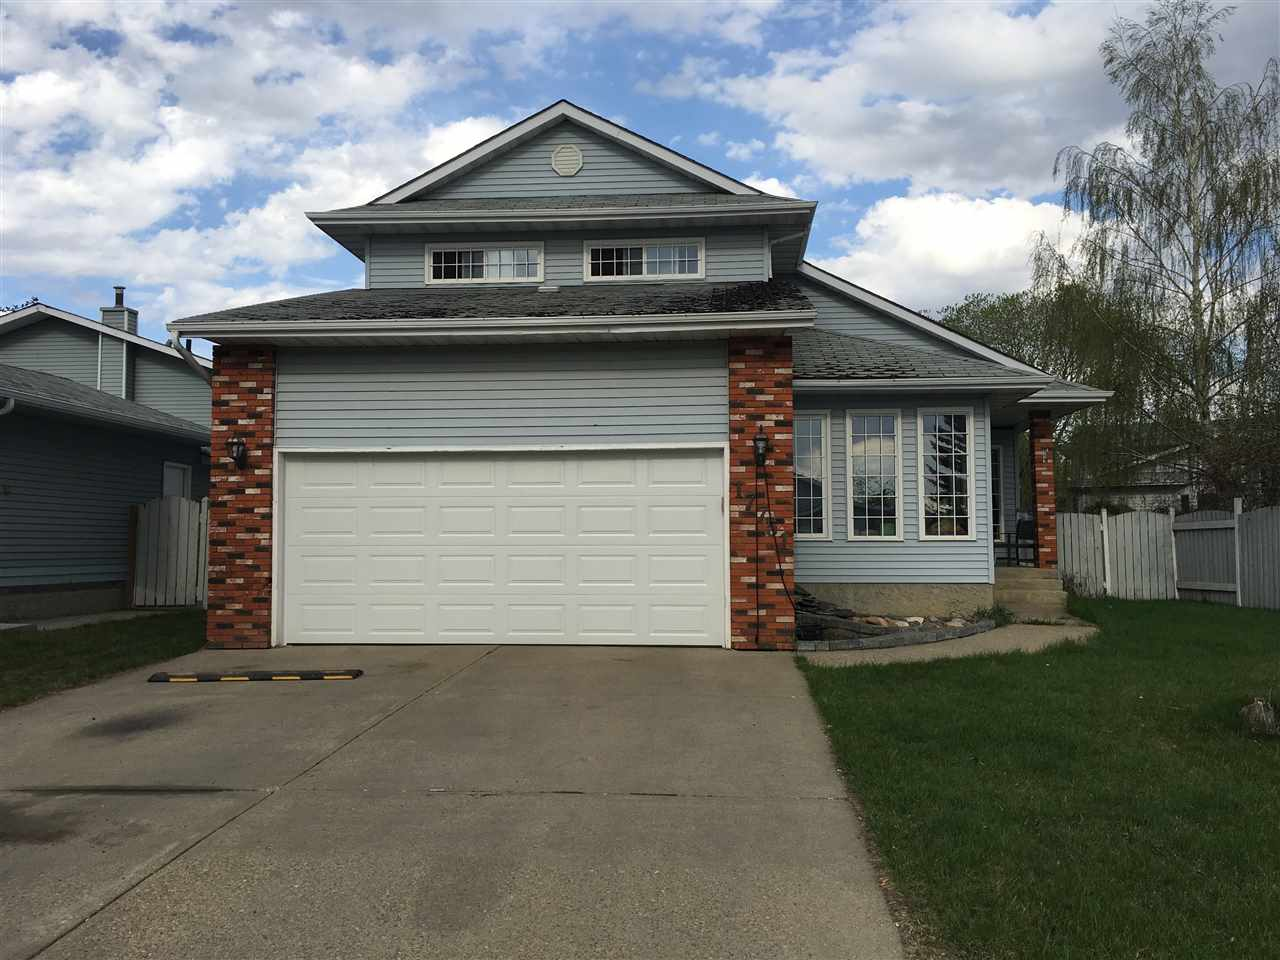 Main Photo: 17751 92 Street in Edmonton: Zone 28 House for sale : MLS(r) # E4063766